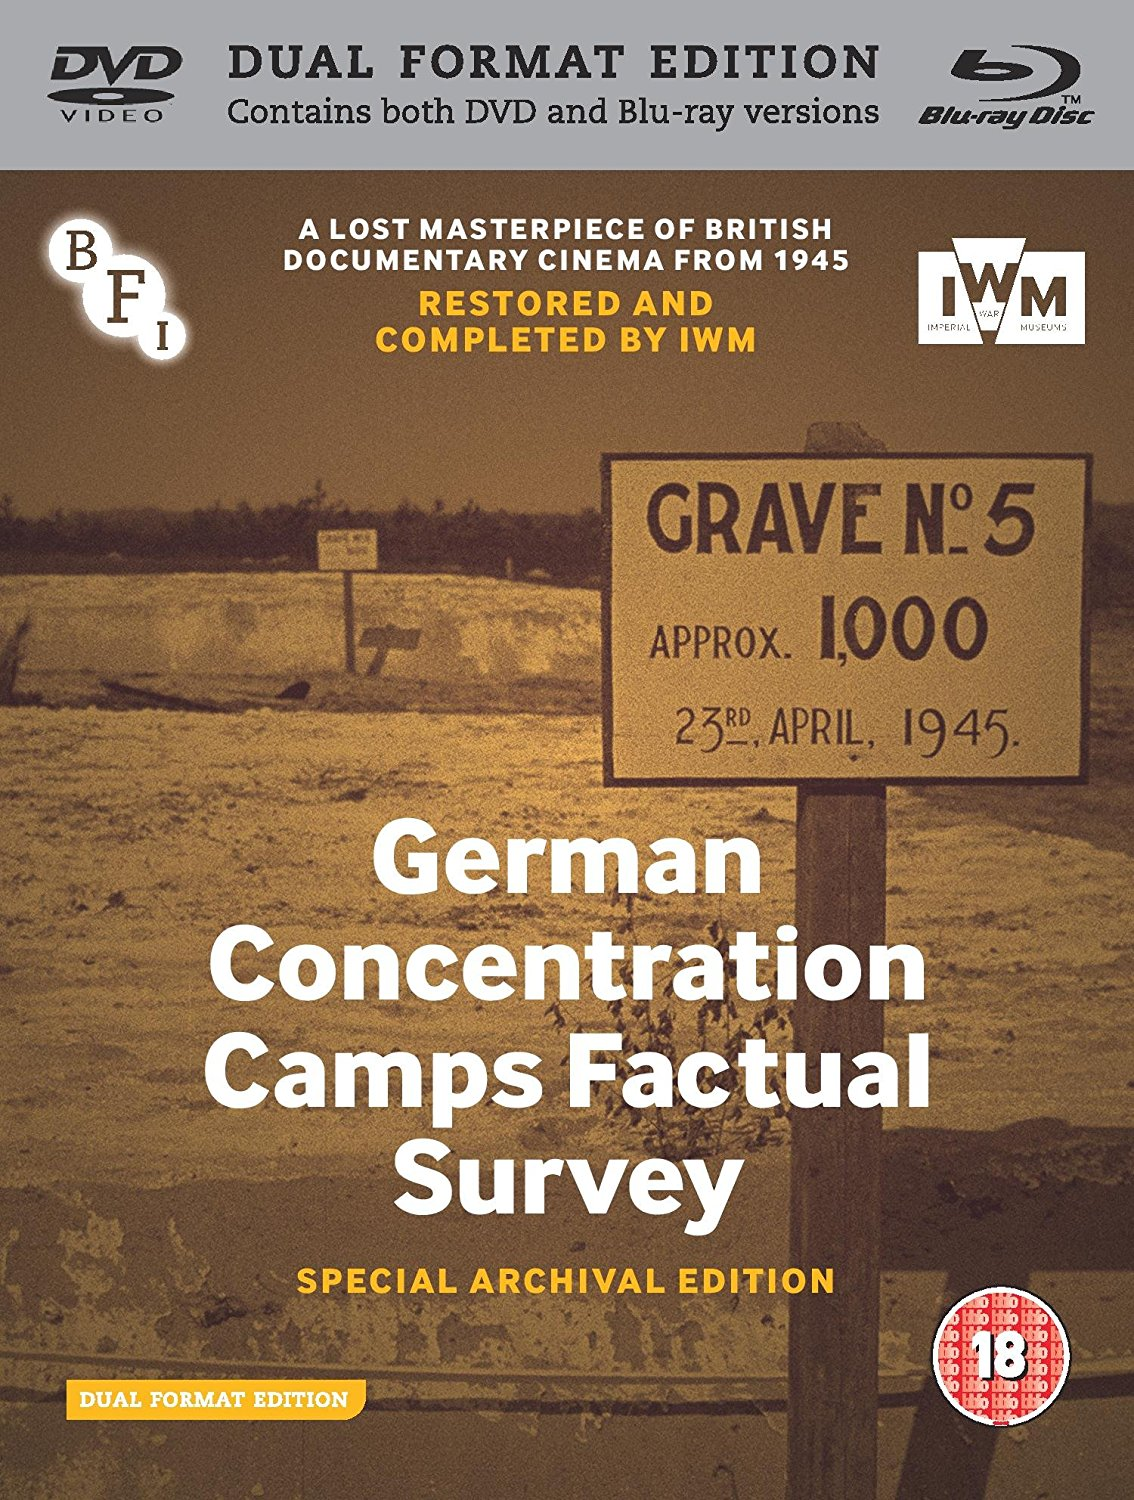 Buy German Concentration Camps Factual Survey: Special Archival Edition